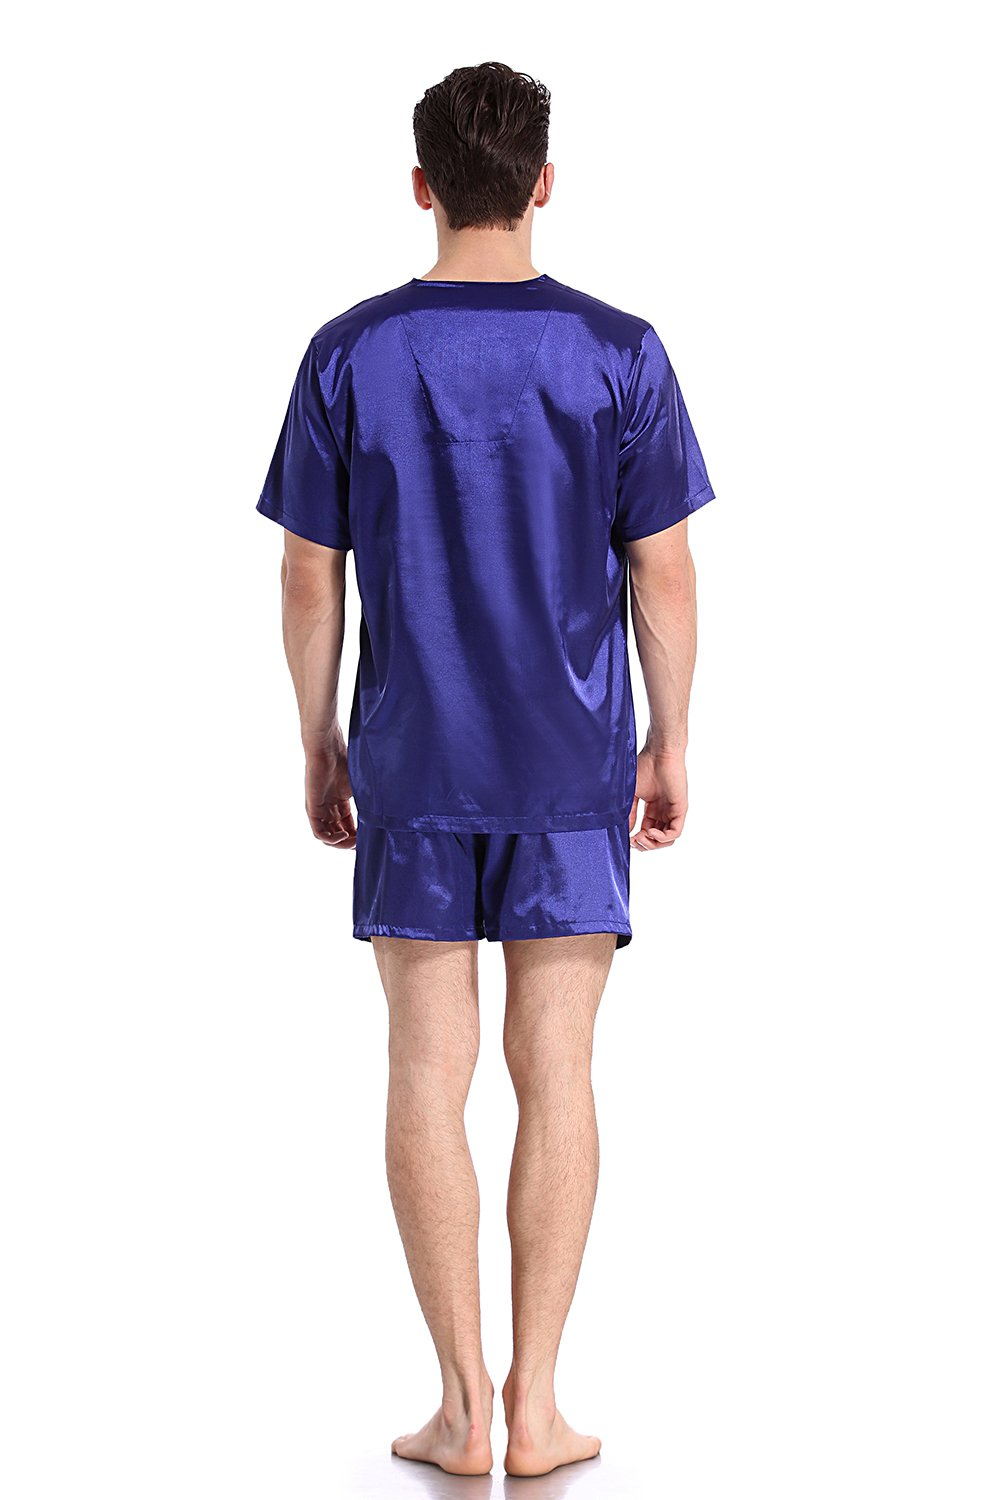 Like2sea Summer Silky Satin Pajamas for Men, Short V-Neck Button Down PJ Set with Mask, Blue, XL by Like2sea (Image #4)